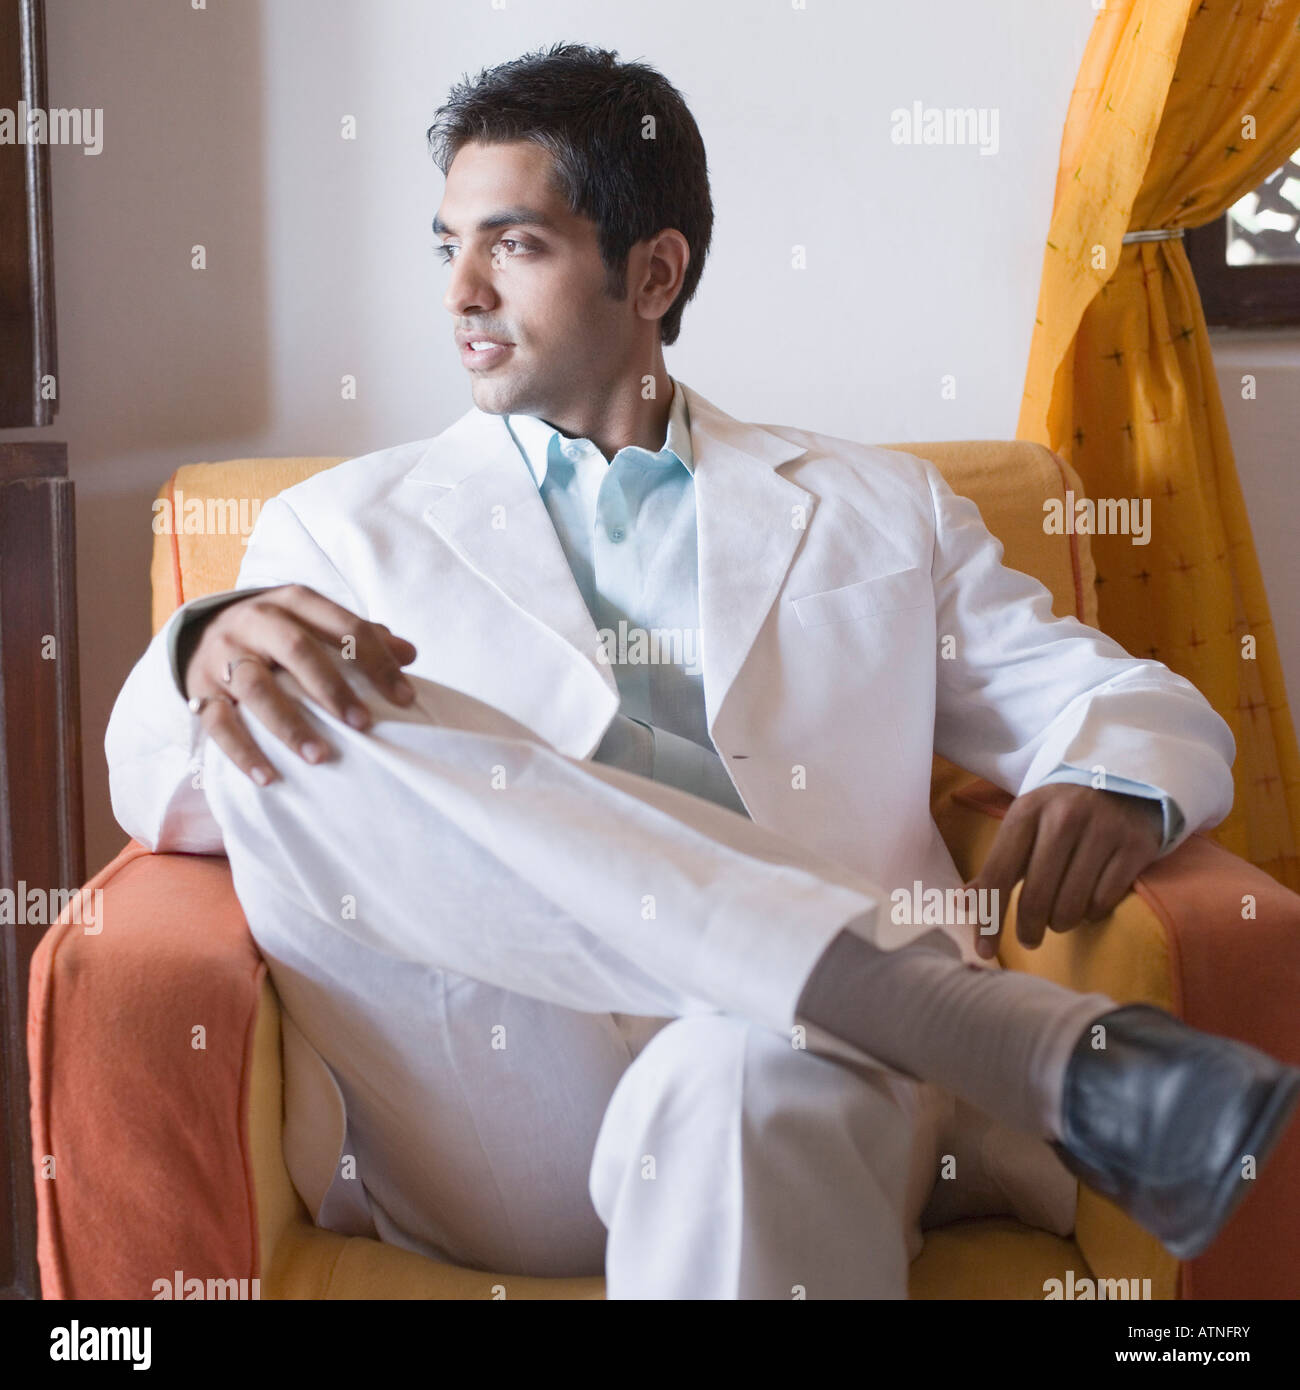 Young man sitting in an armchair with his hand on his knee Stock Photo